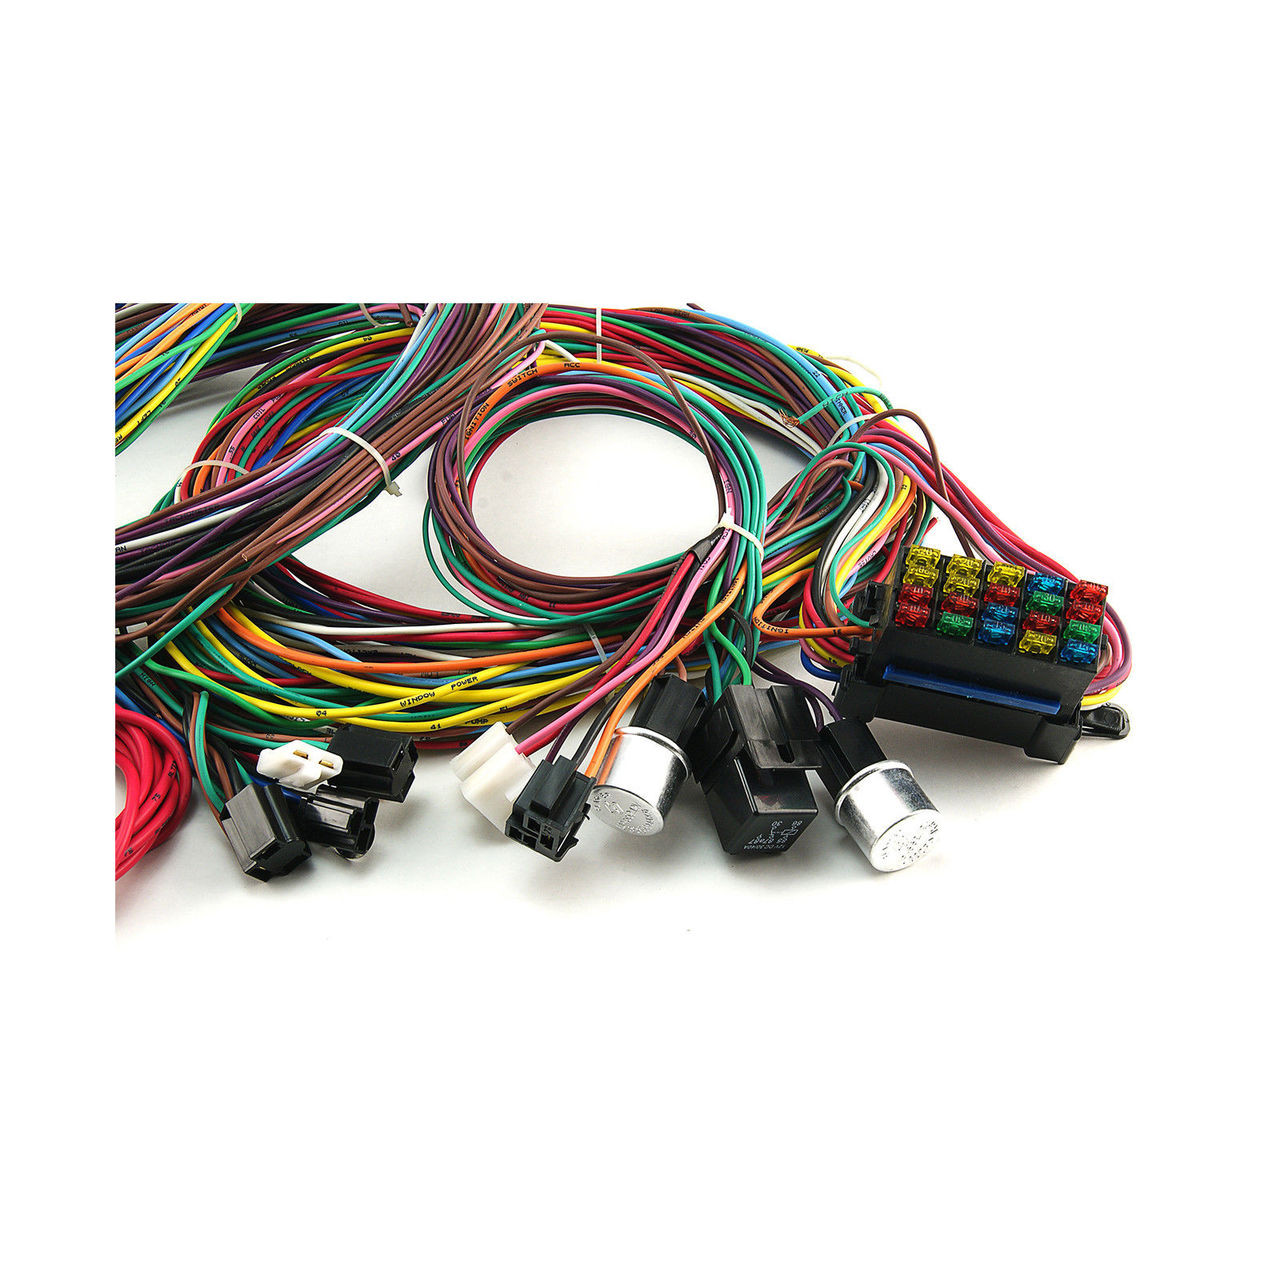 tlg universal 20 circuit wiring harness kit suit hot rod race car price 299 00 image 1 larger more photos [ 1280 x 1280 Pixel ]